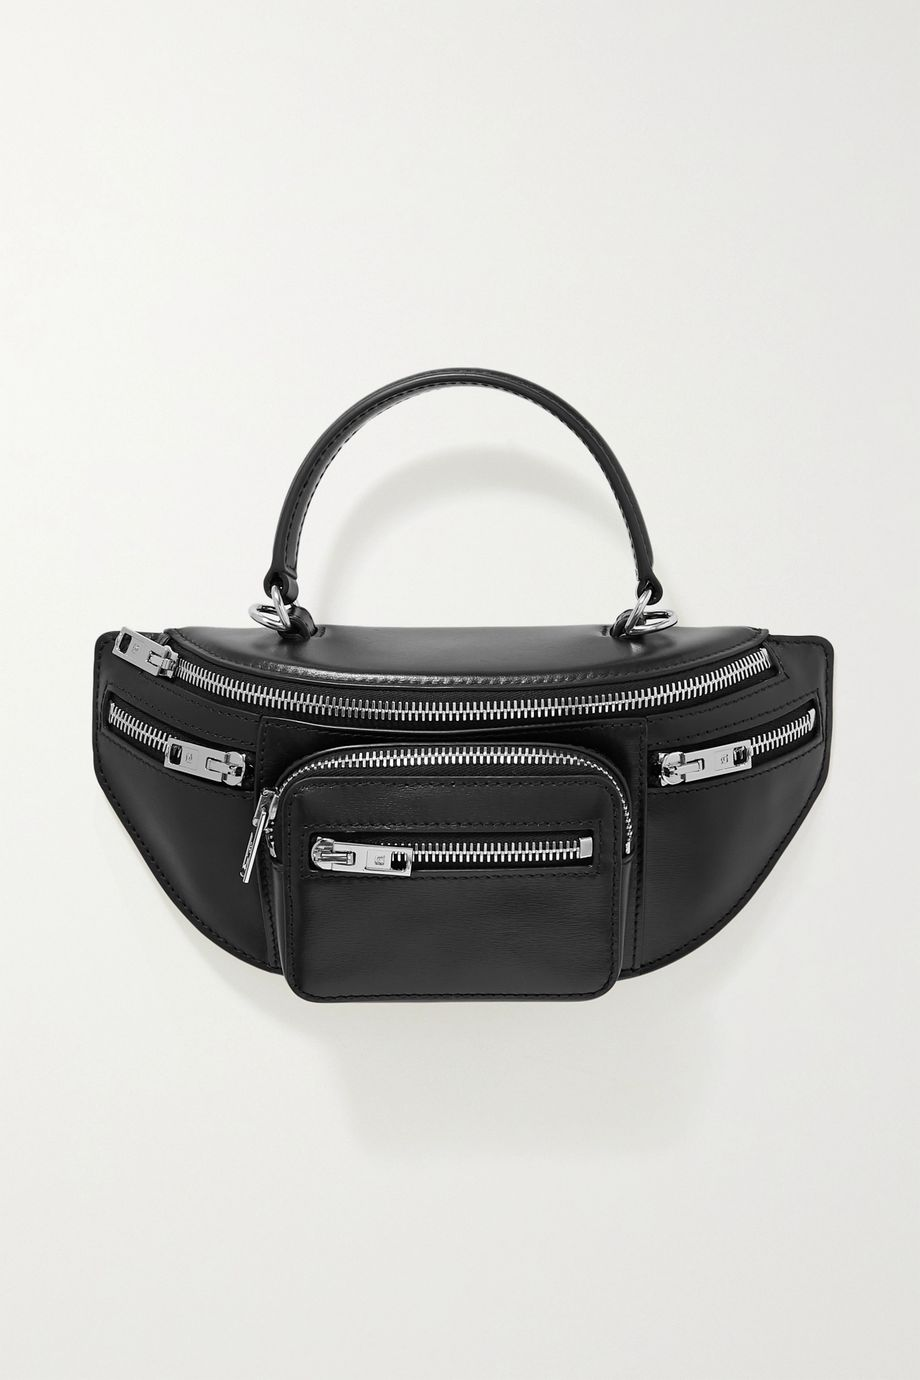 Alexander Wang Attica leather tote